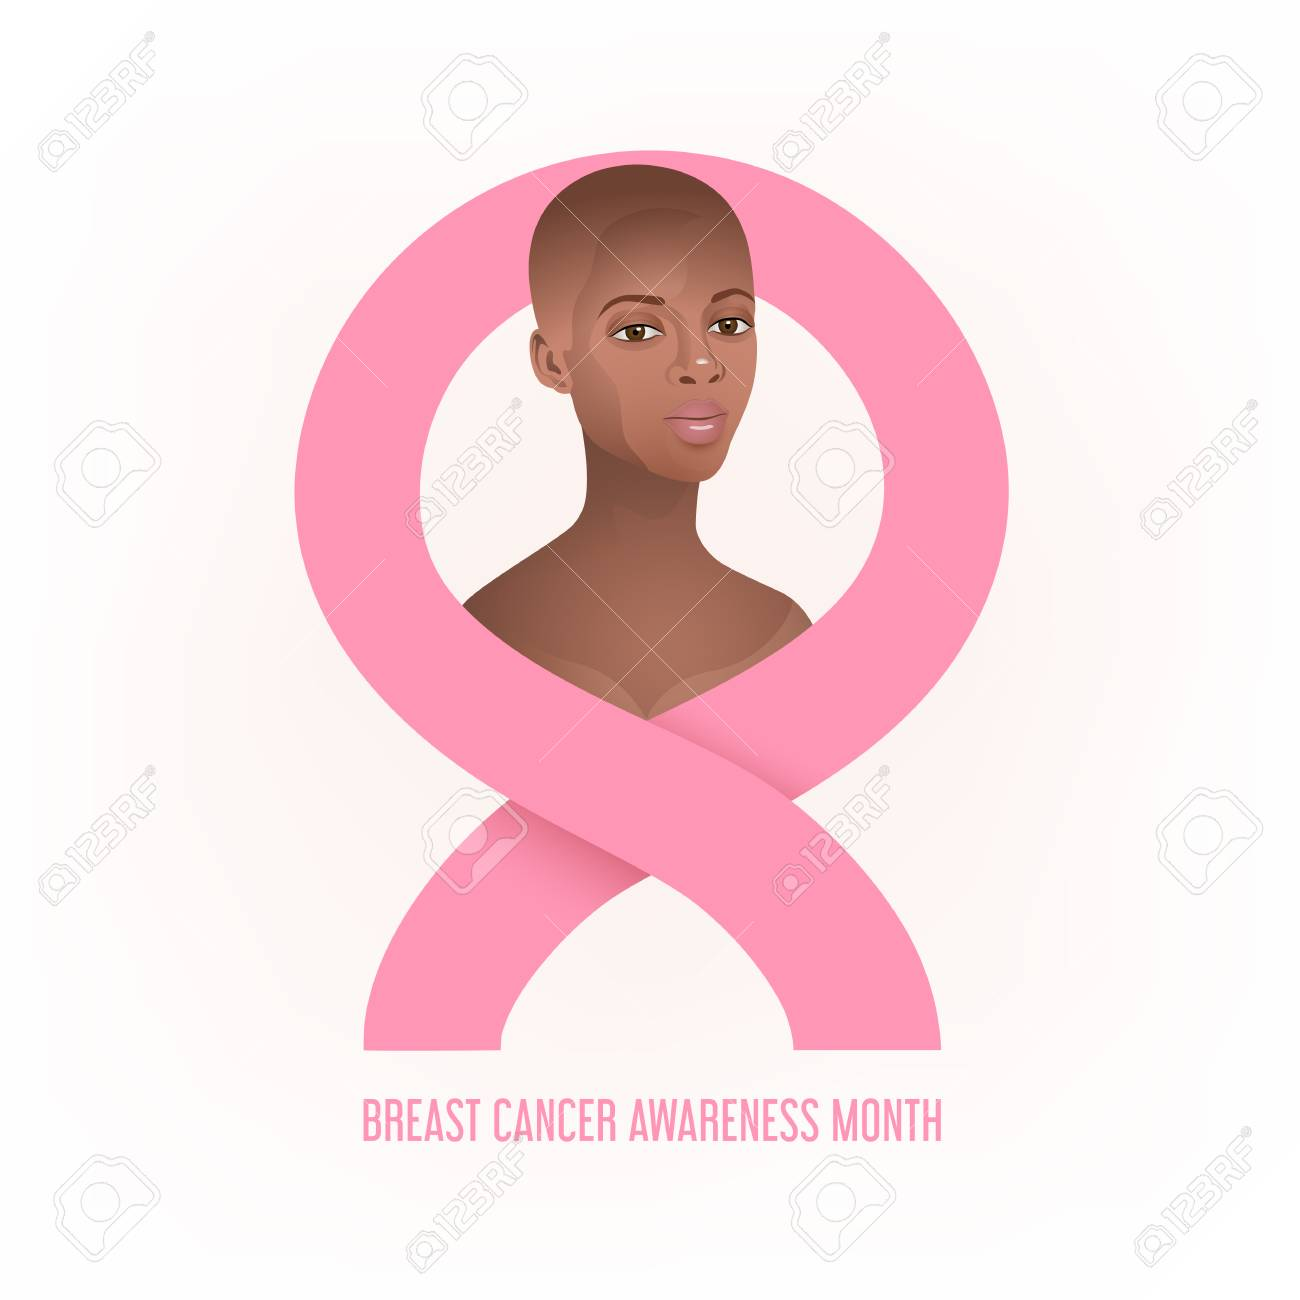 Breast Cancer Awareness Banner With Black Women Royalty Free Cliparts Vectors And Stock Illustration Image 114530233